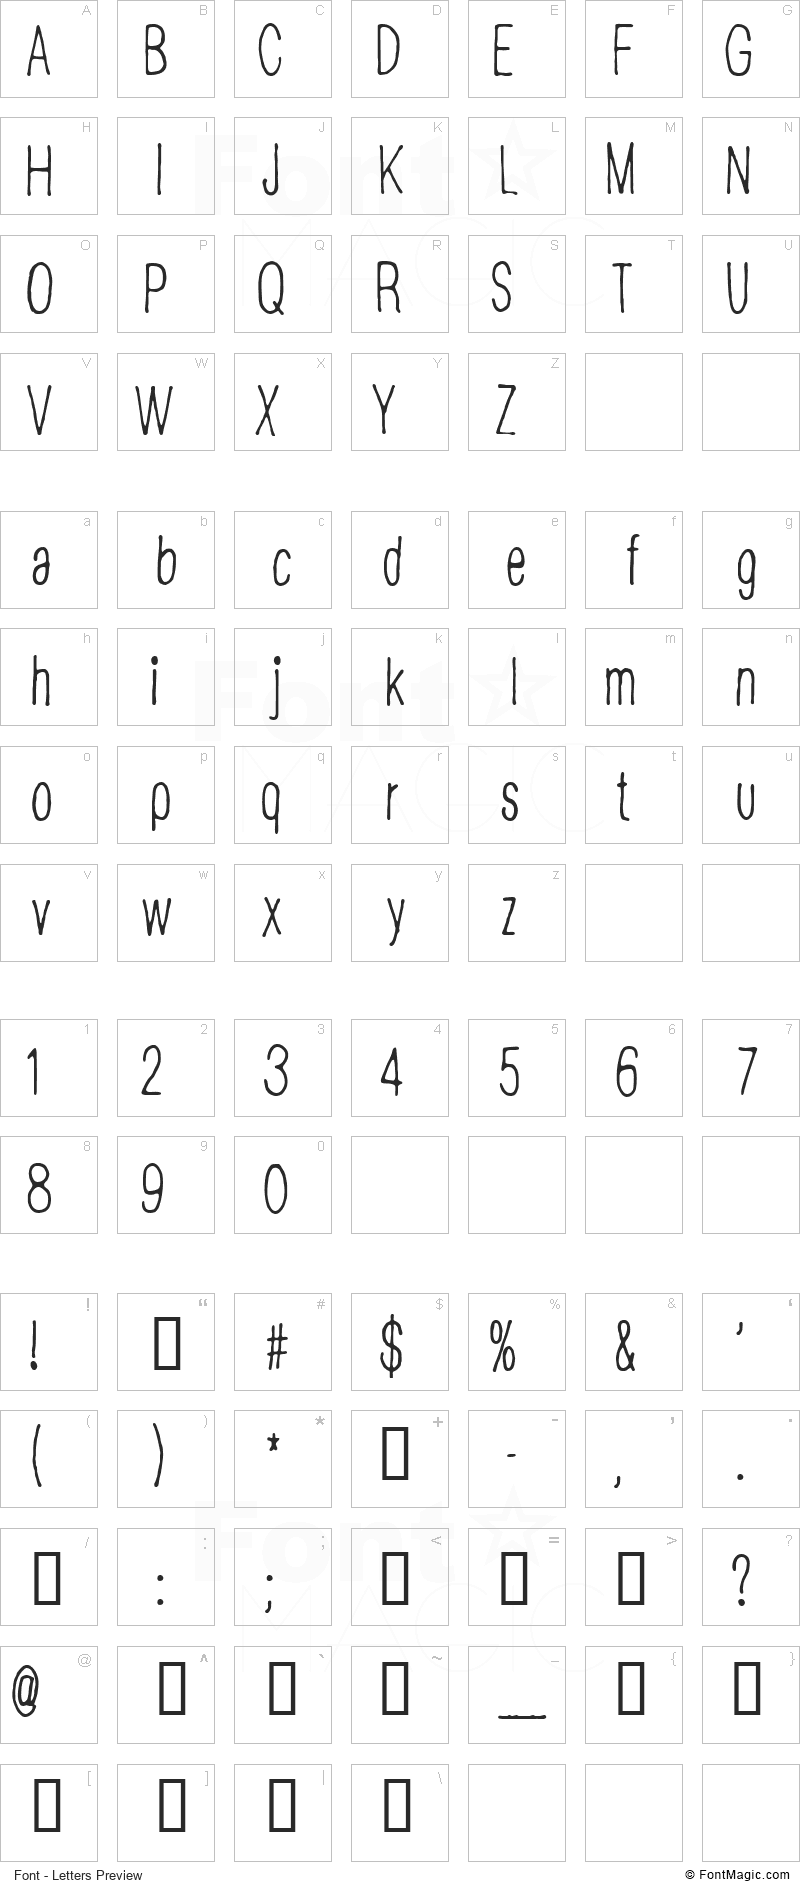 CF Disappointed Font - All Latters Preview Chart